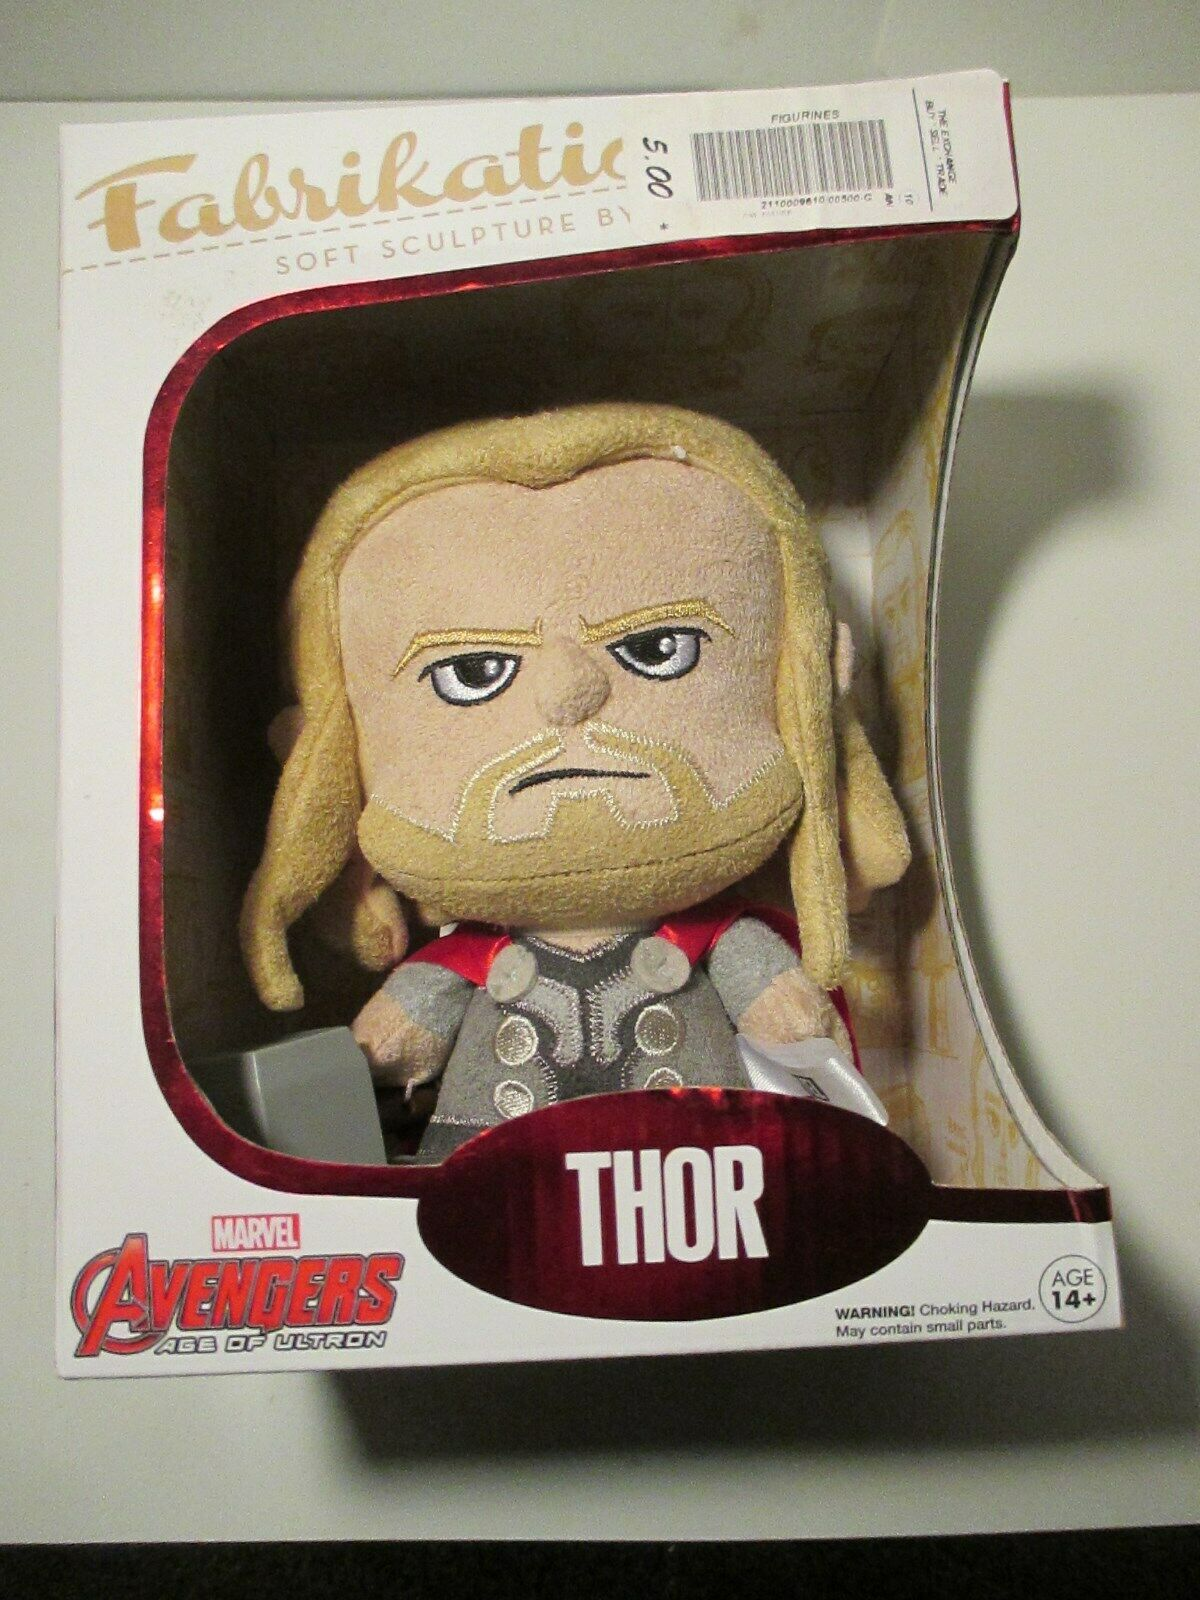 THOR Marvel Avengers Funko Fabrikations Soft Sculpture NEW NIB